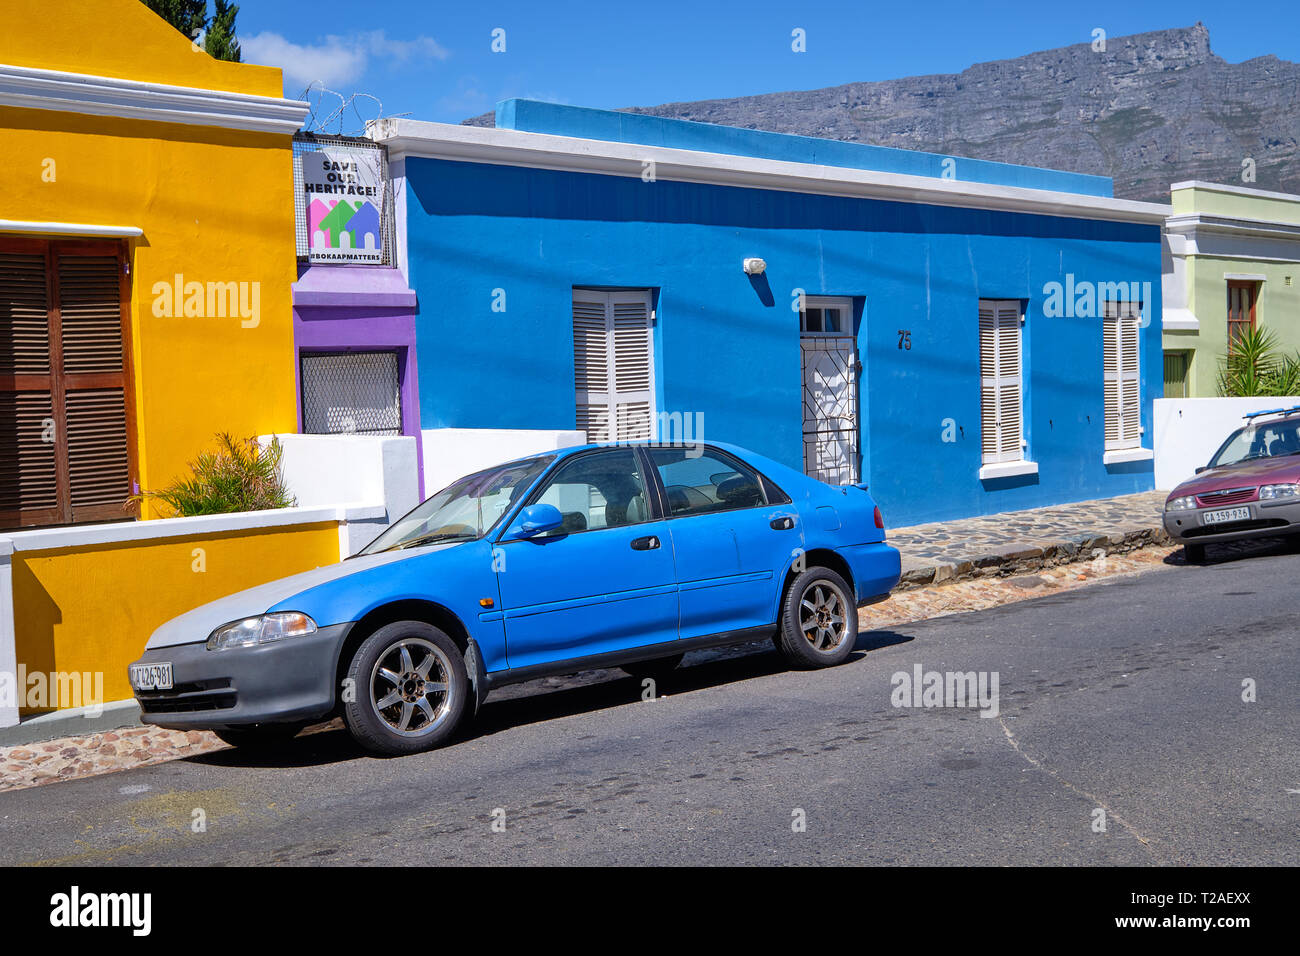 Blue car parked in front of blue house in Bo Kaap, With table Mountain in back. Cape Town, South Africa, March 21, 2019. Stock Photo